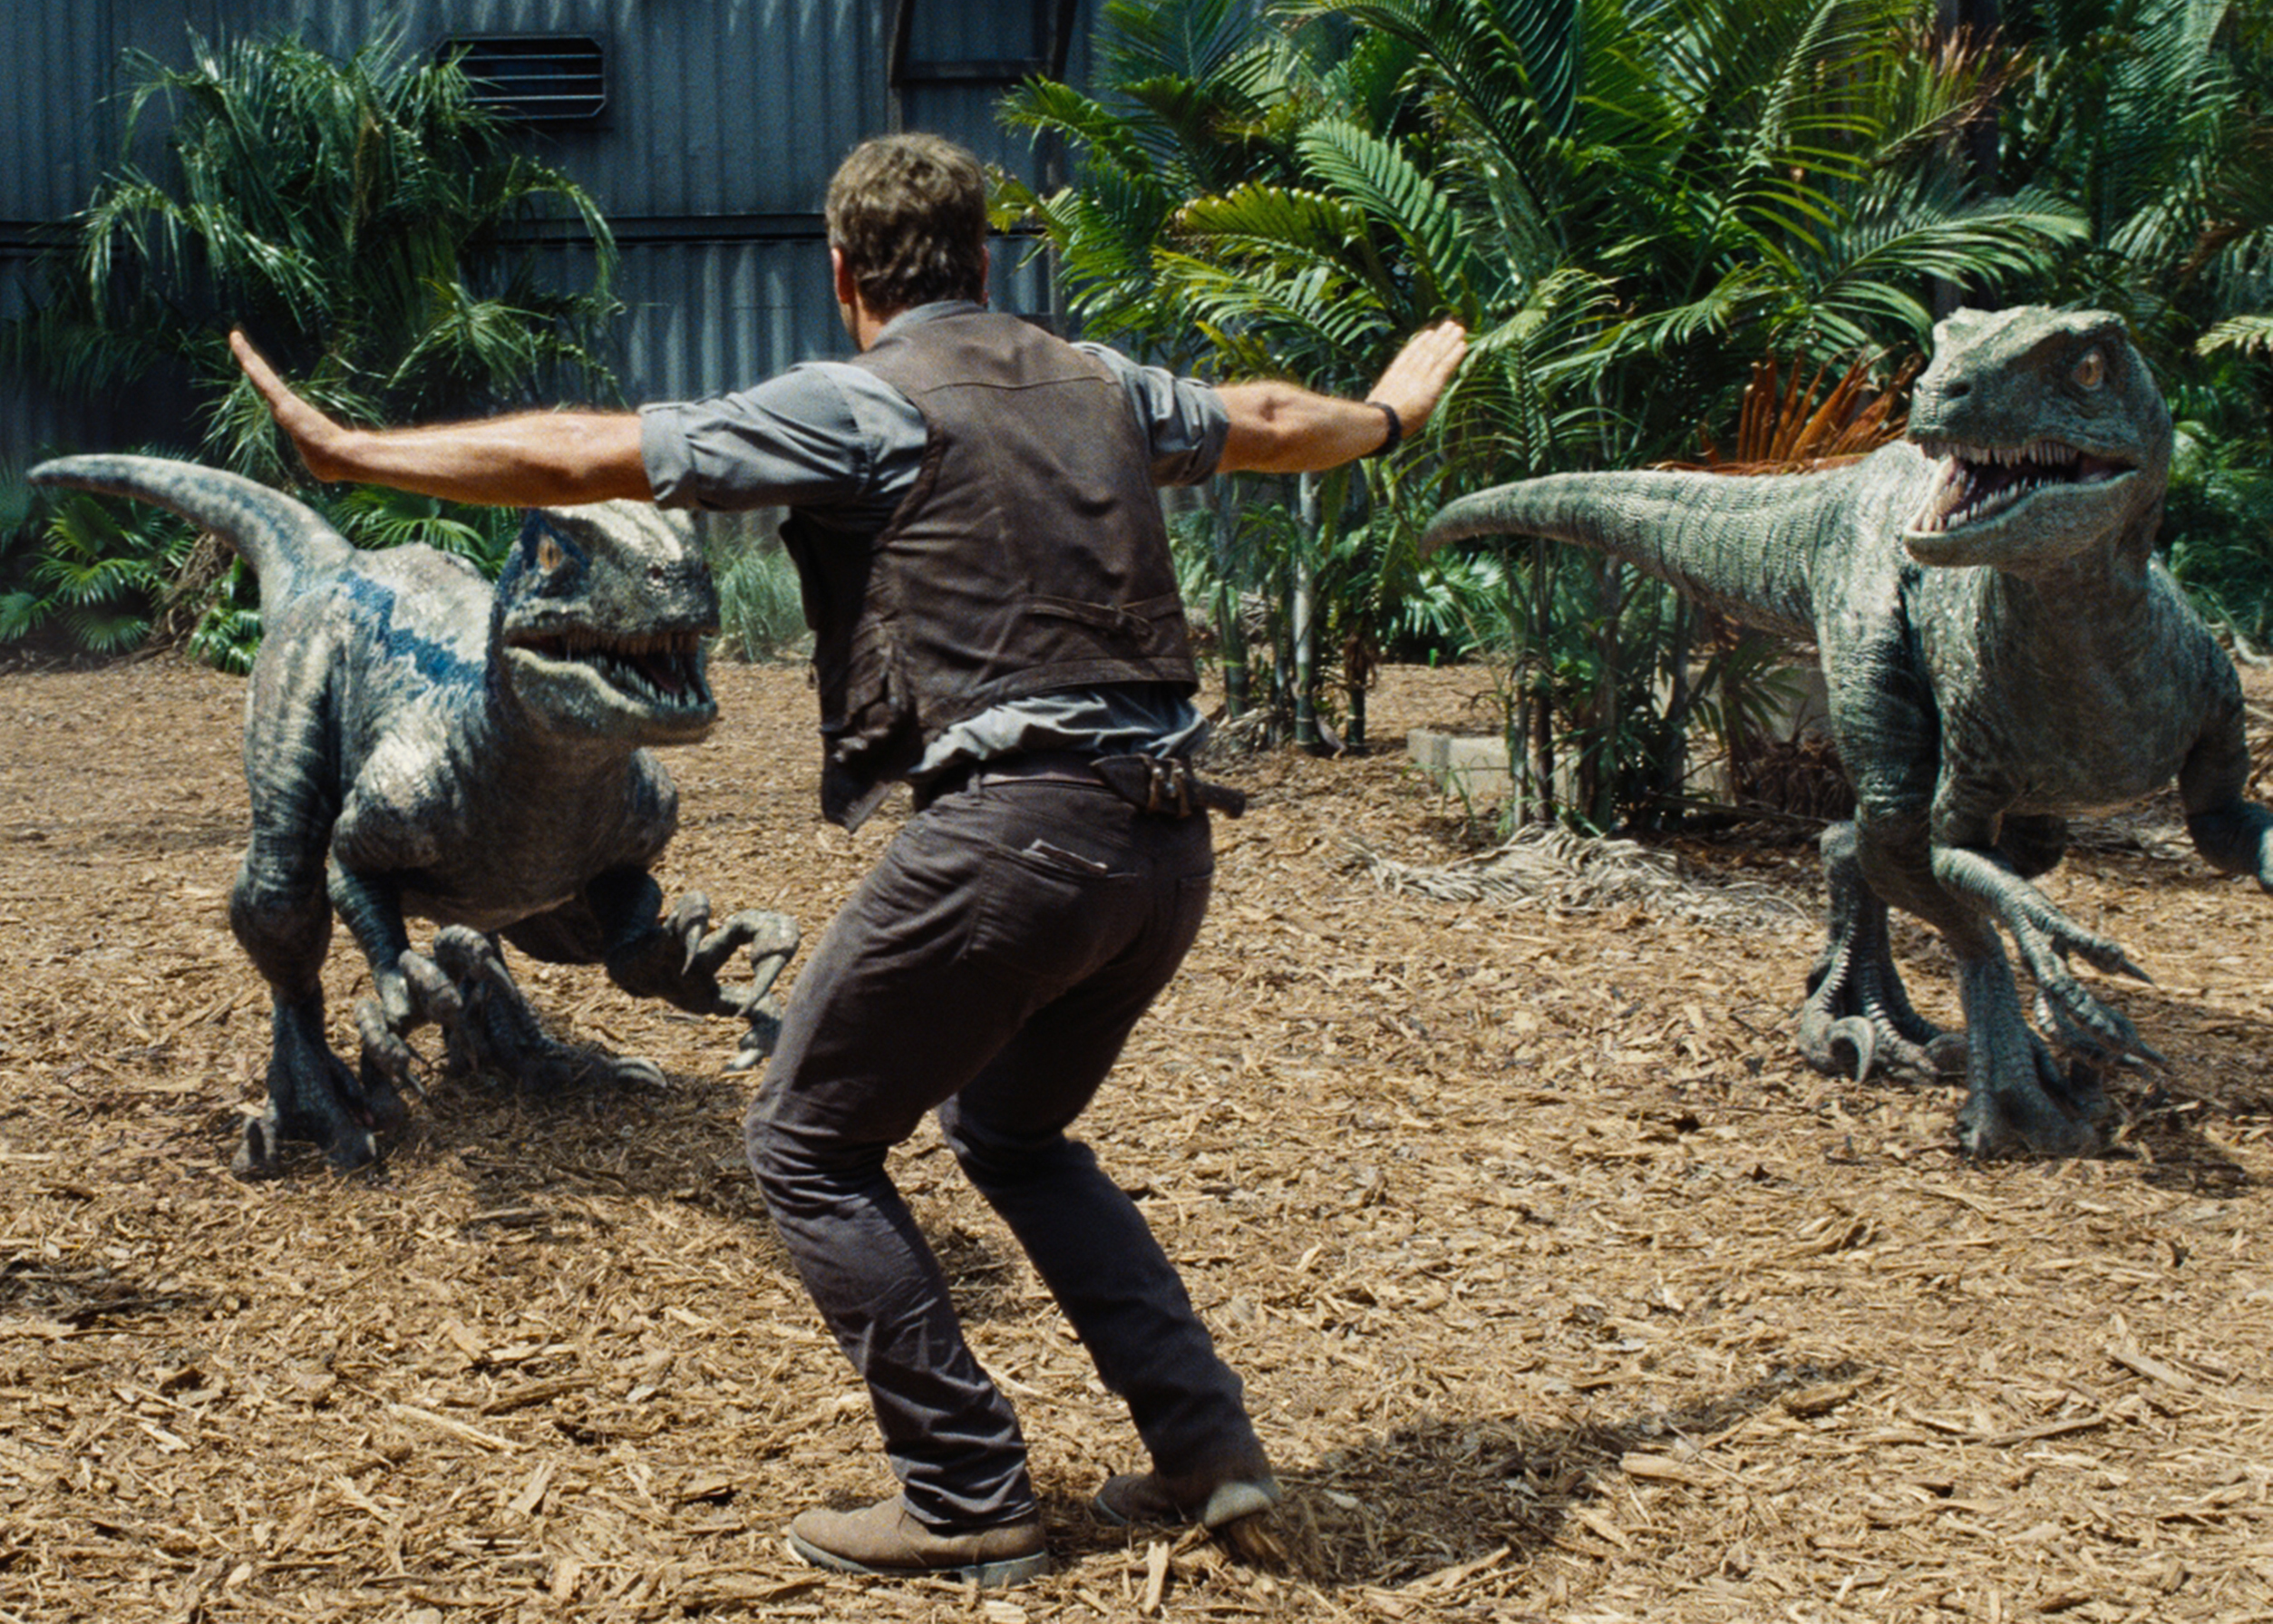 Jurassic World 2015 Directed By Colin Trevorrow Film Review